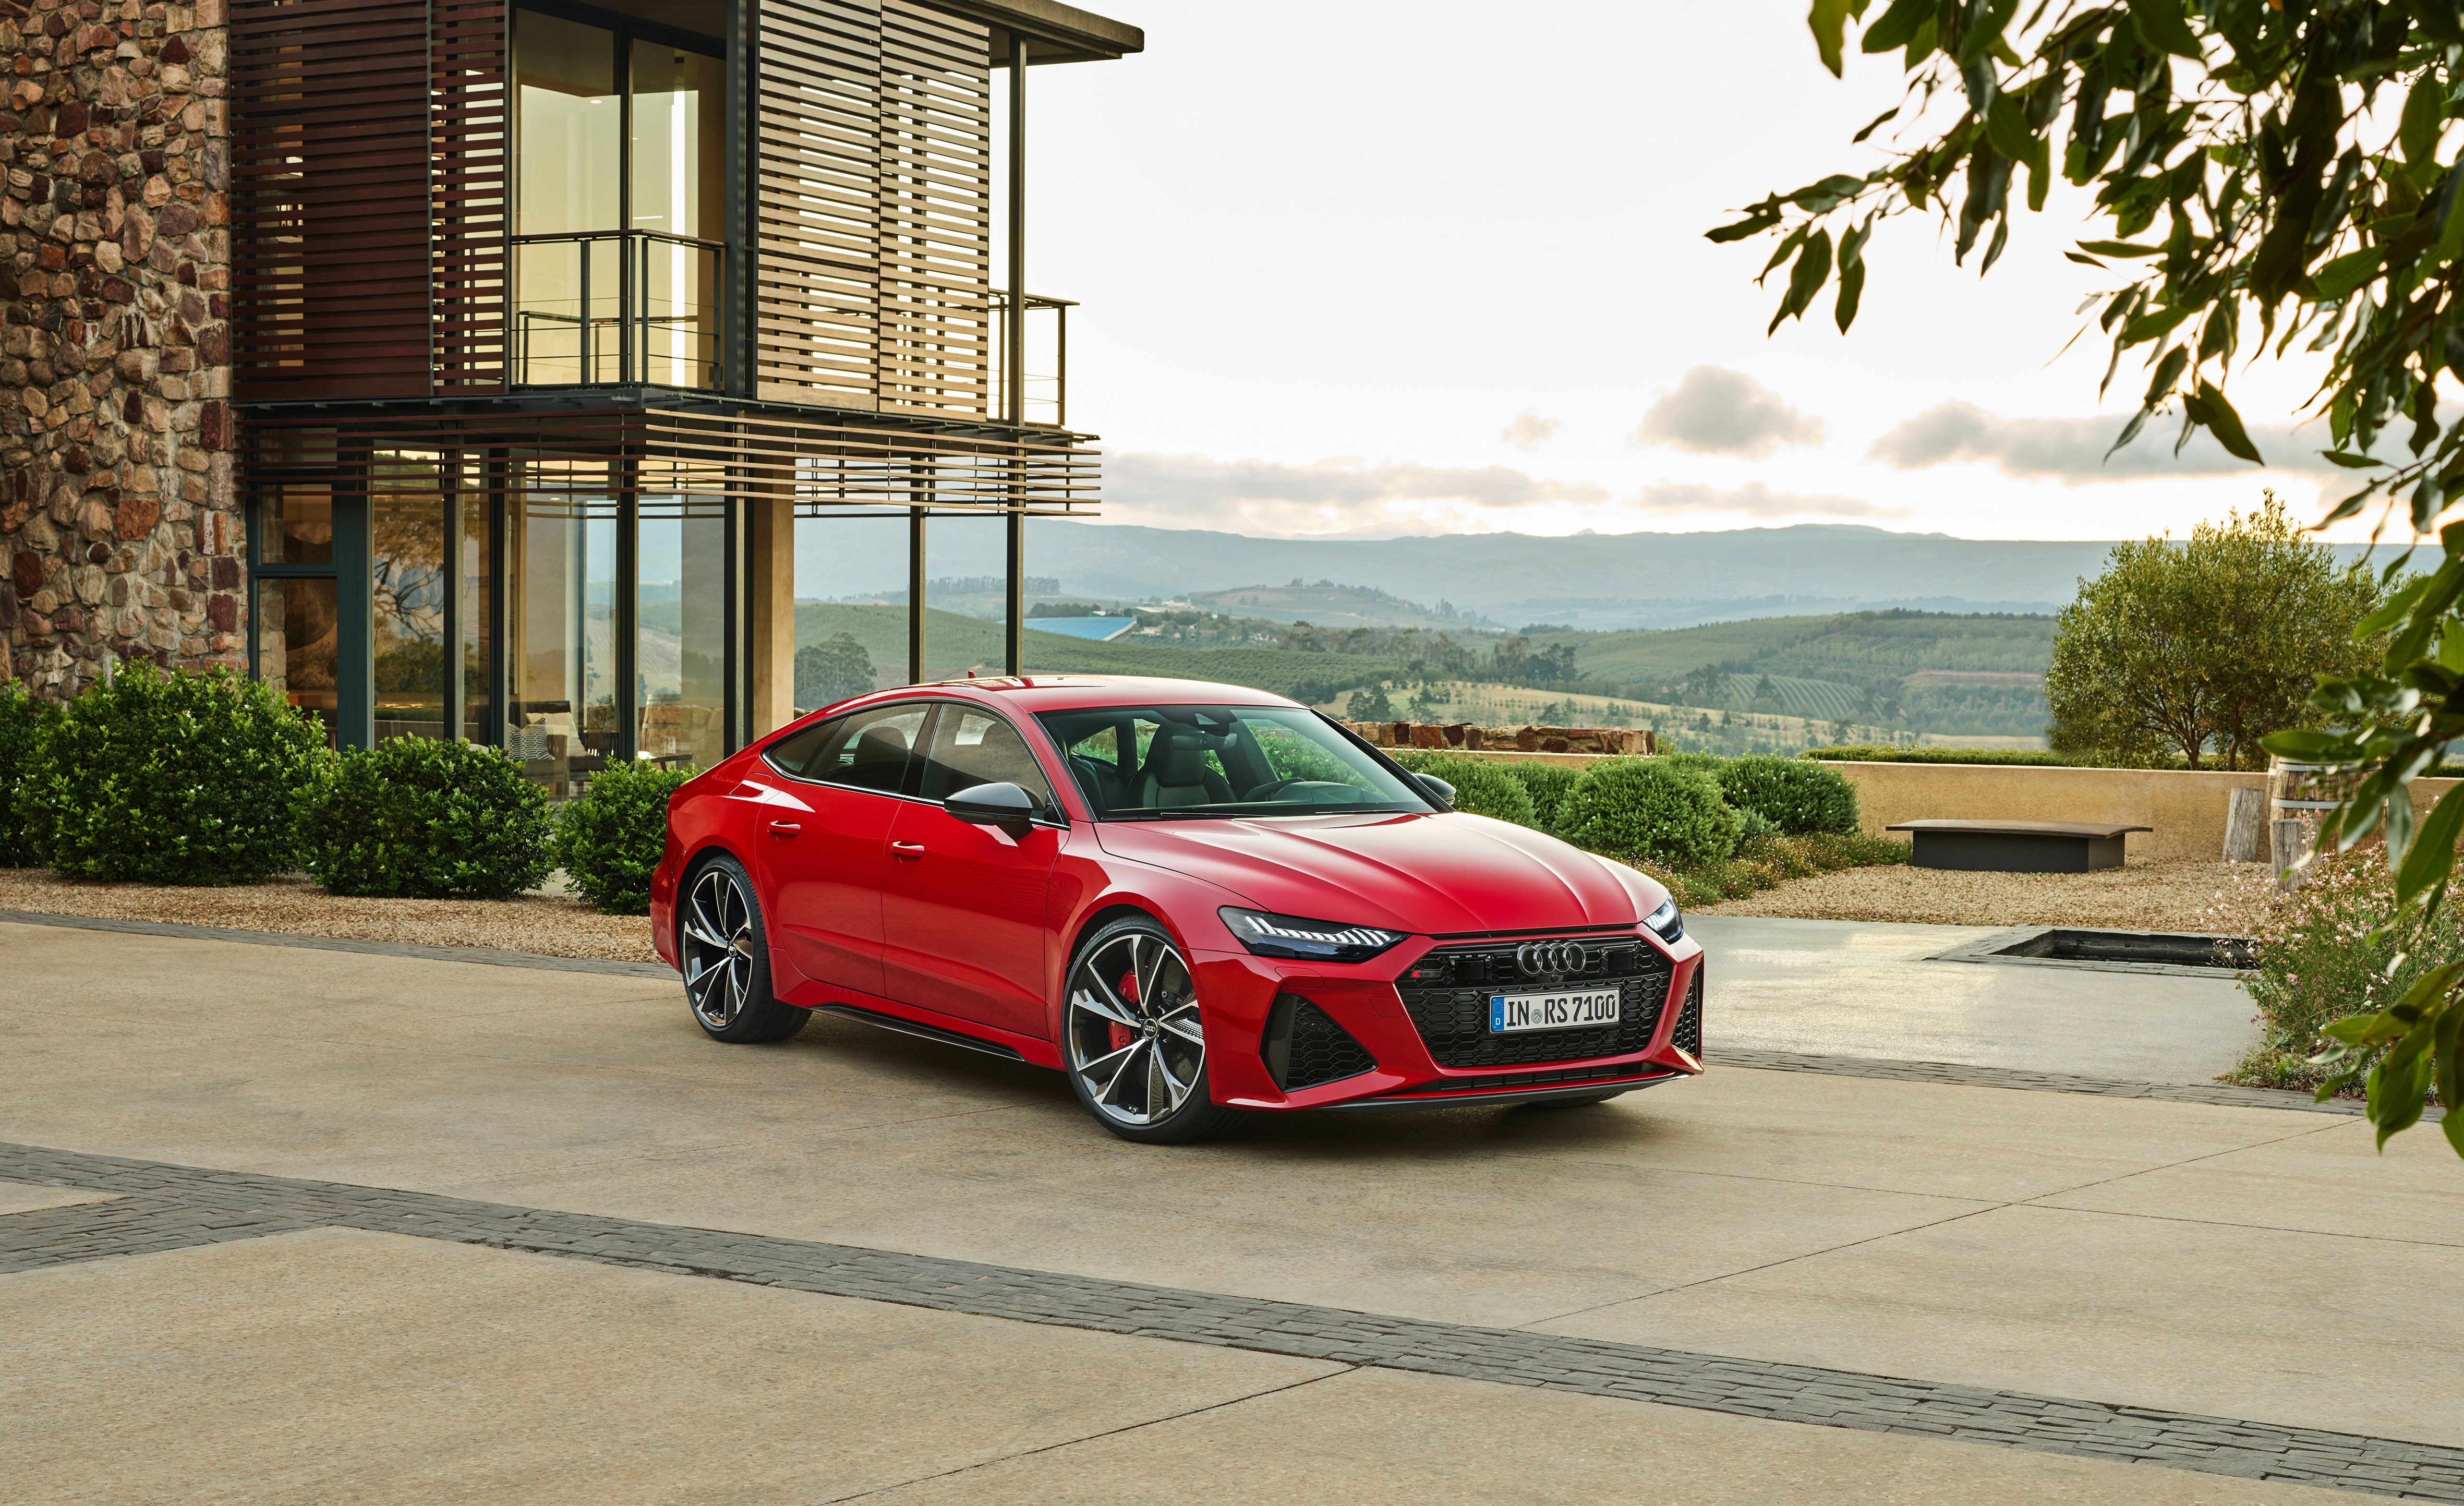 Rs7 2017 Sportback With A Red Colour Samick Guitar Wiring Diagrams Hinoengine Yenpancane Jeanjaures37 Fr